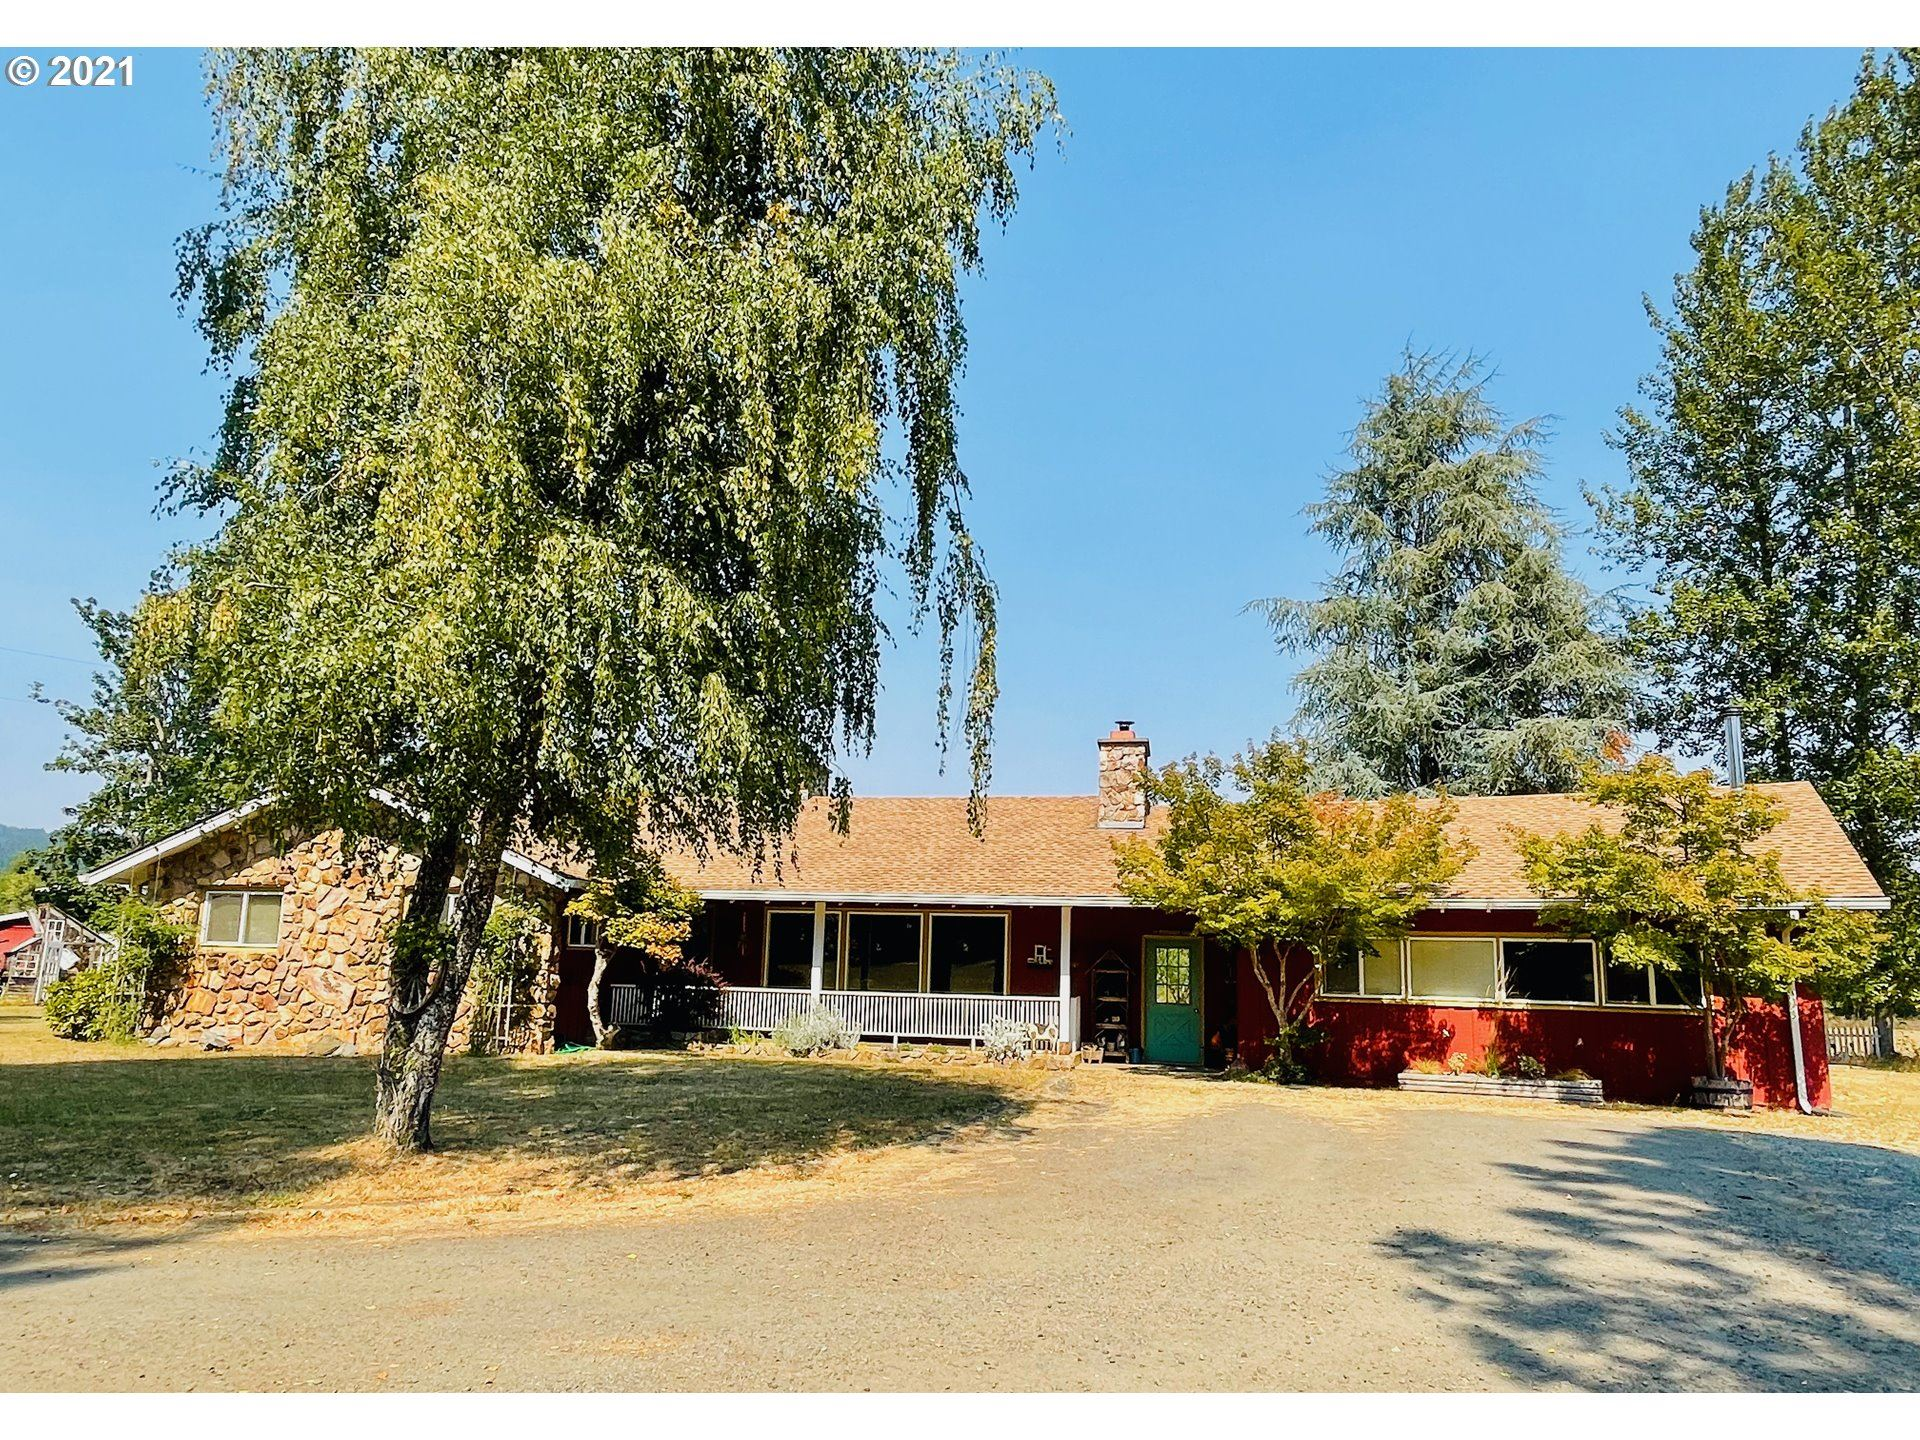 Photo for 32397 LYNX HOLLOW RD, Creswell, OR 97426 (MLS # 21343029)